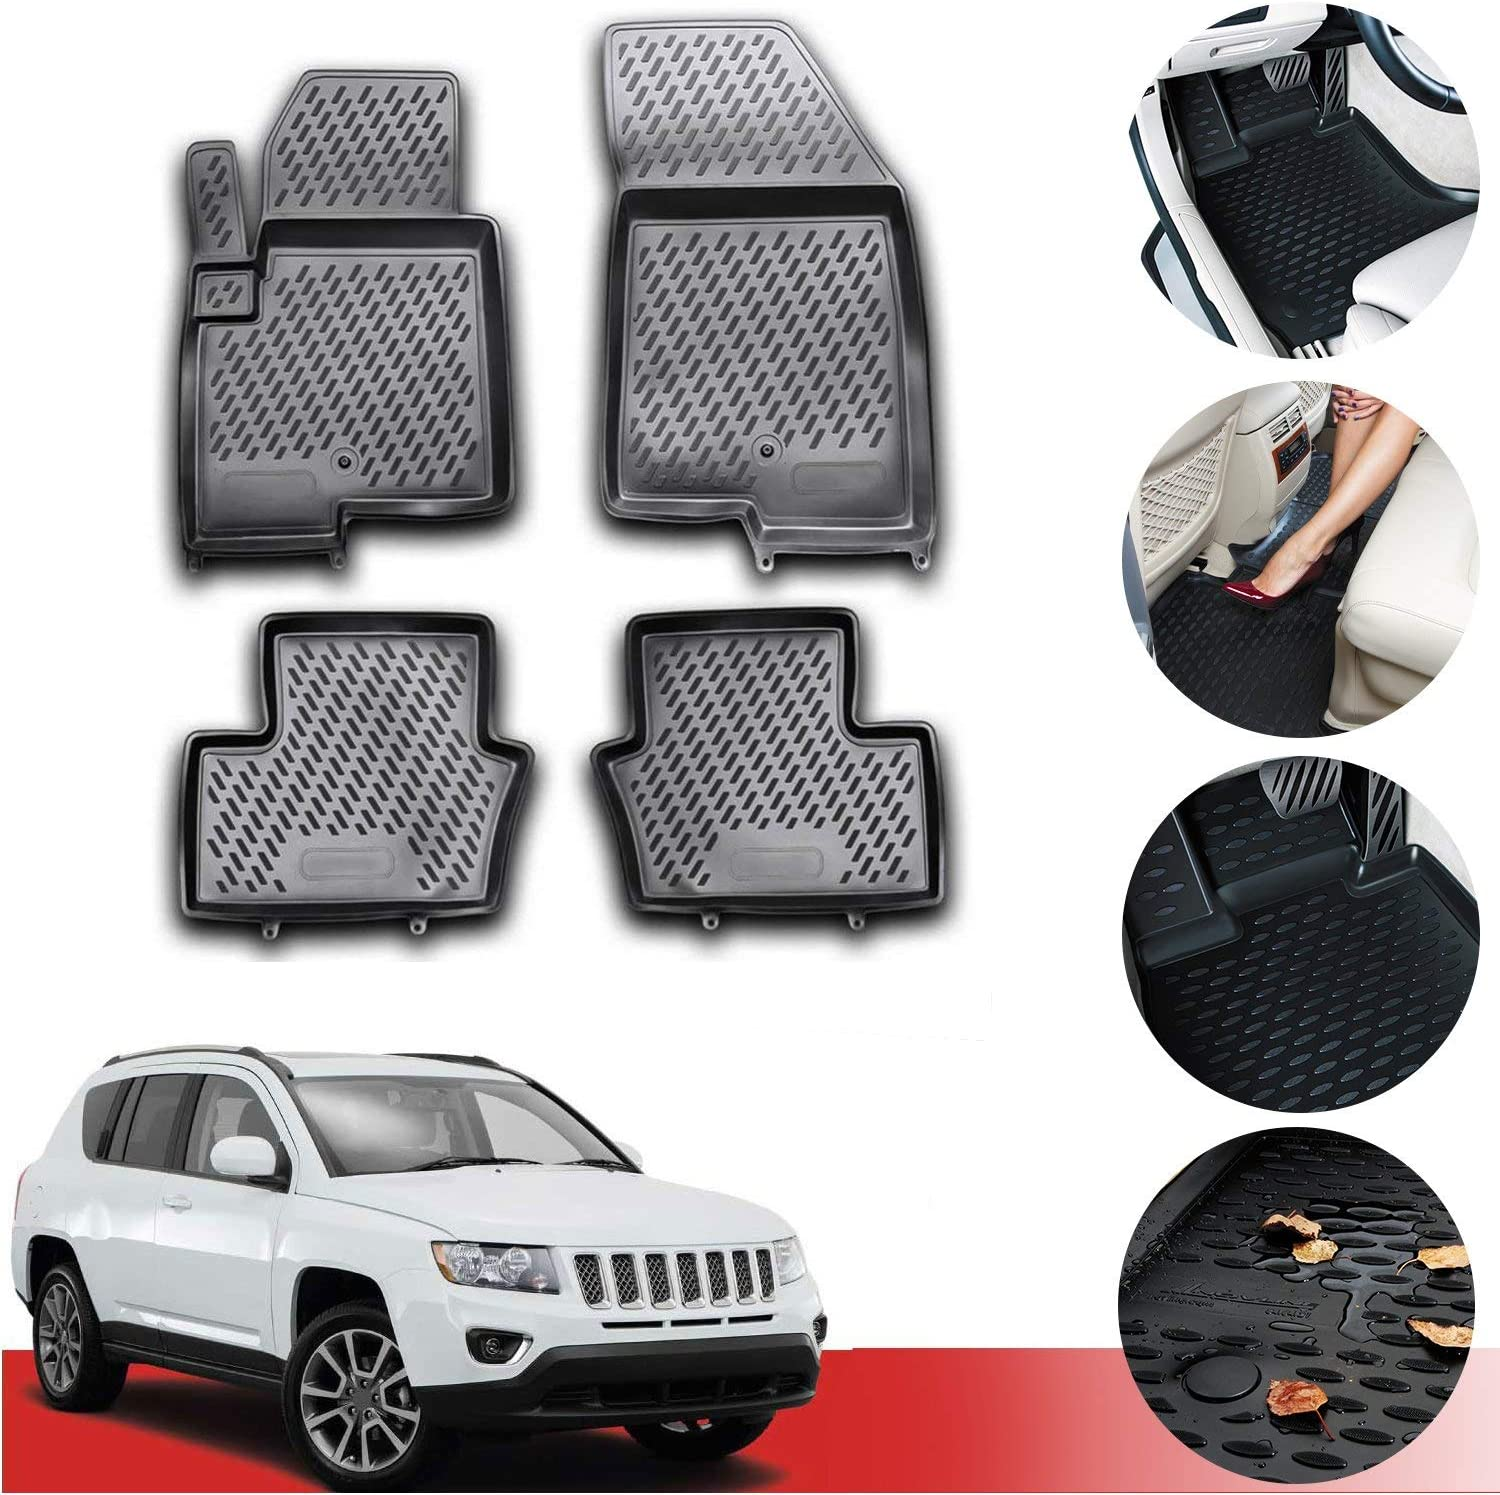 Custom Car Floor Mats for Toyota Corolla 2007-2013 All Weather Waterproof Non-Slip Full Covered Protection Advanced Performance Liners Car Liner Beige